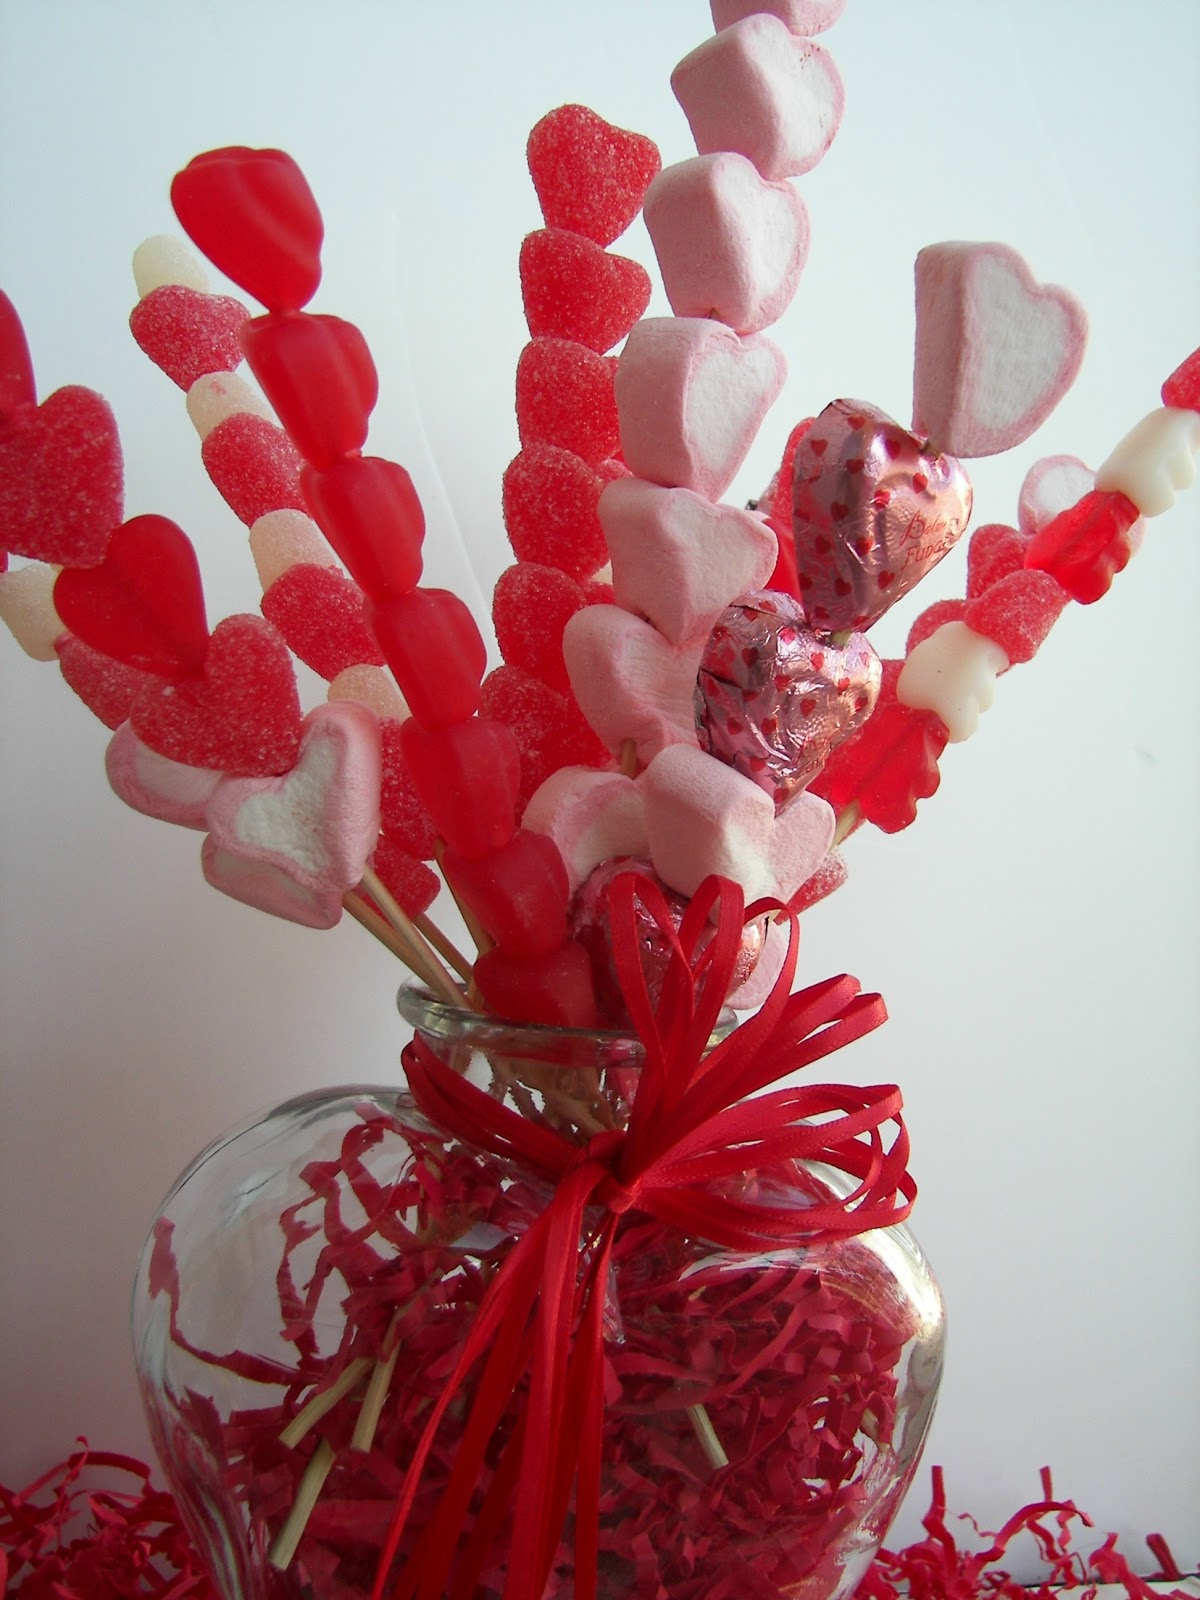 DIY Candy Bouquets for Valentines Day, Birthdays & More! |Valentines Cotton Candy Bouquet Ideas